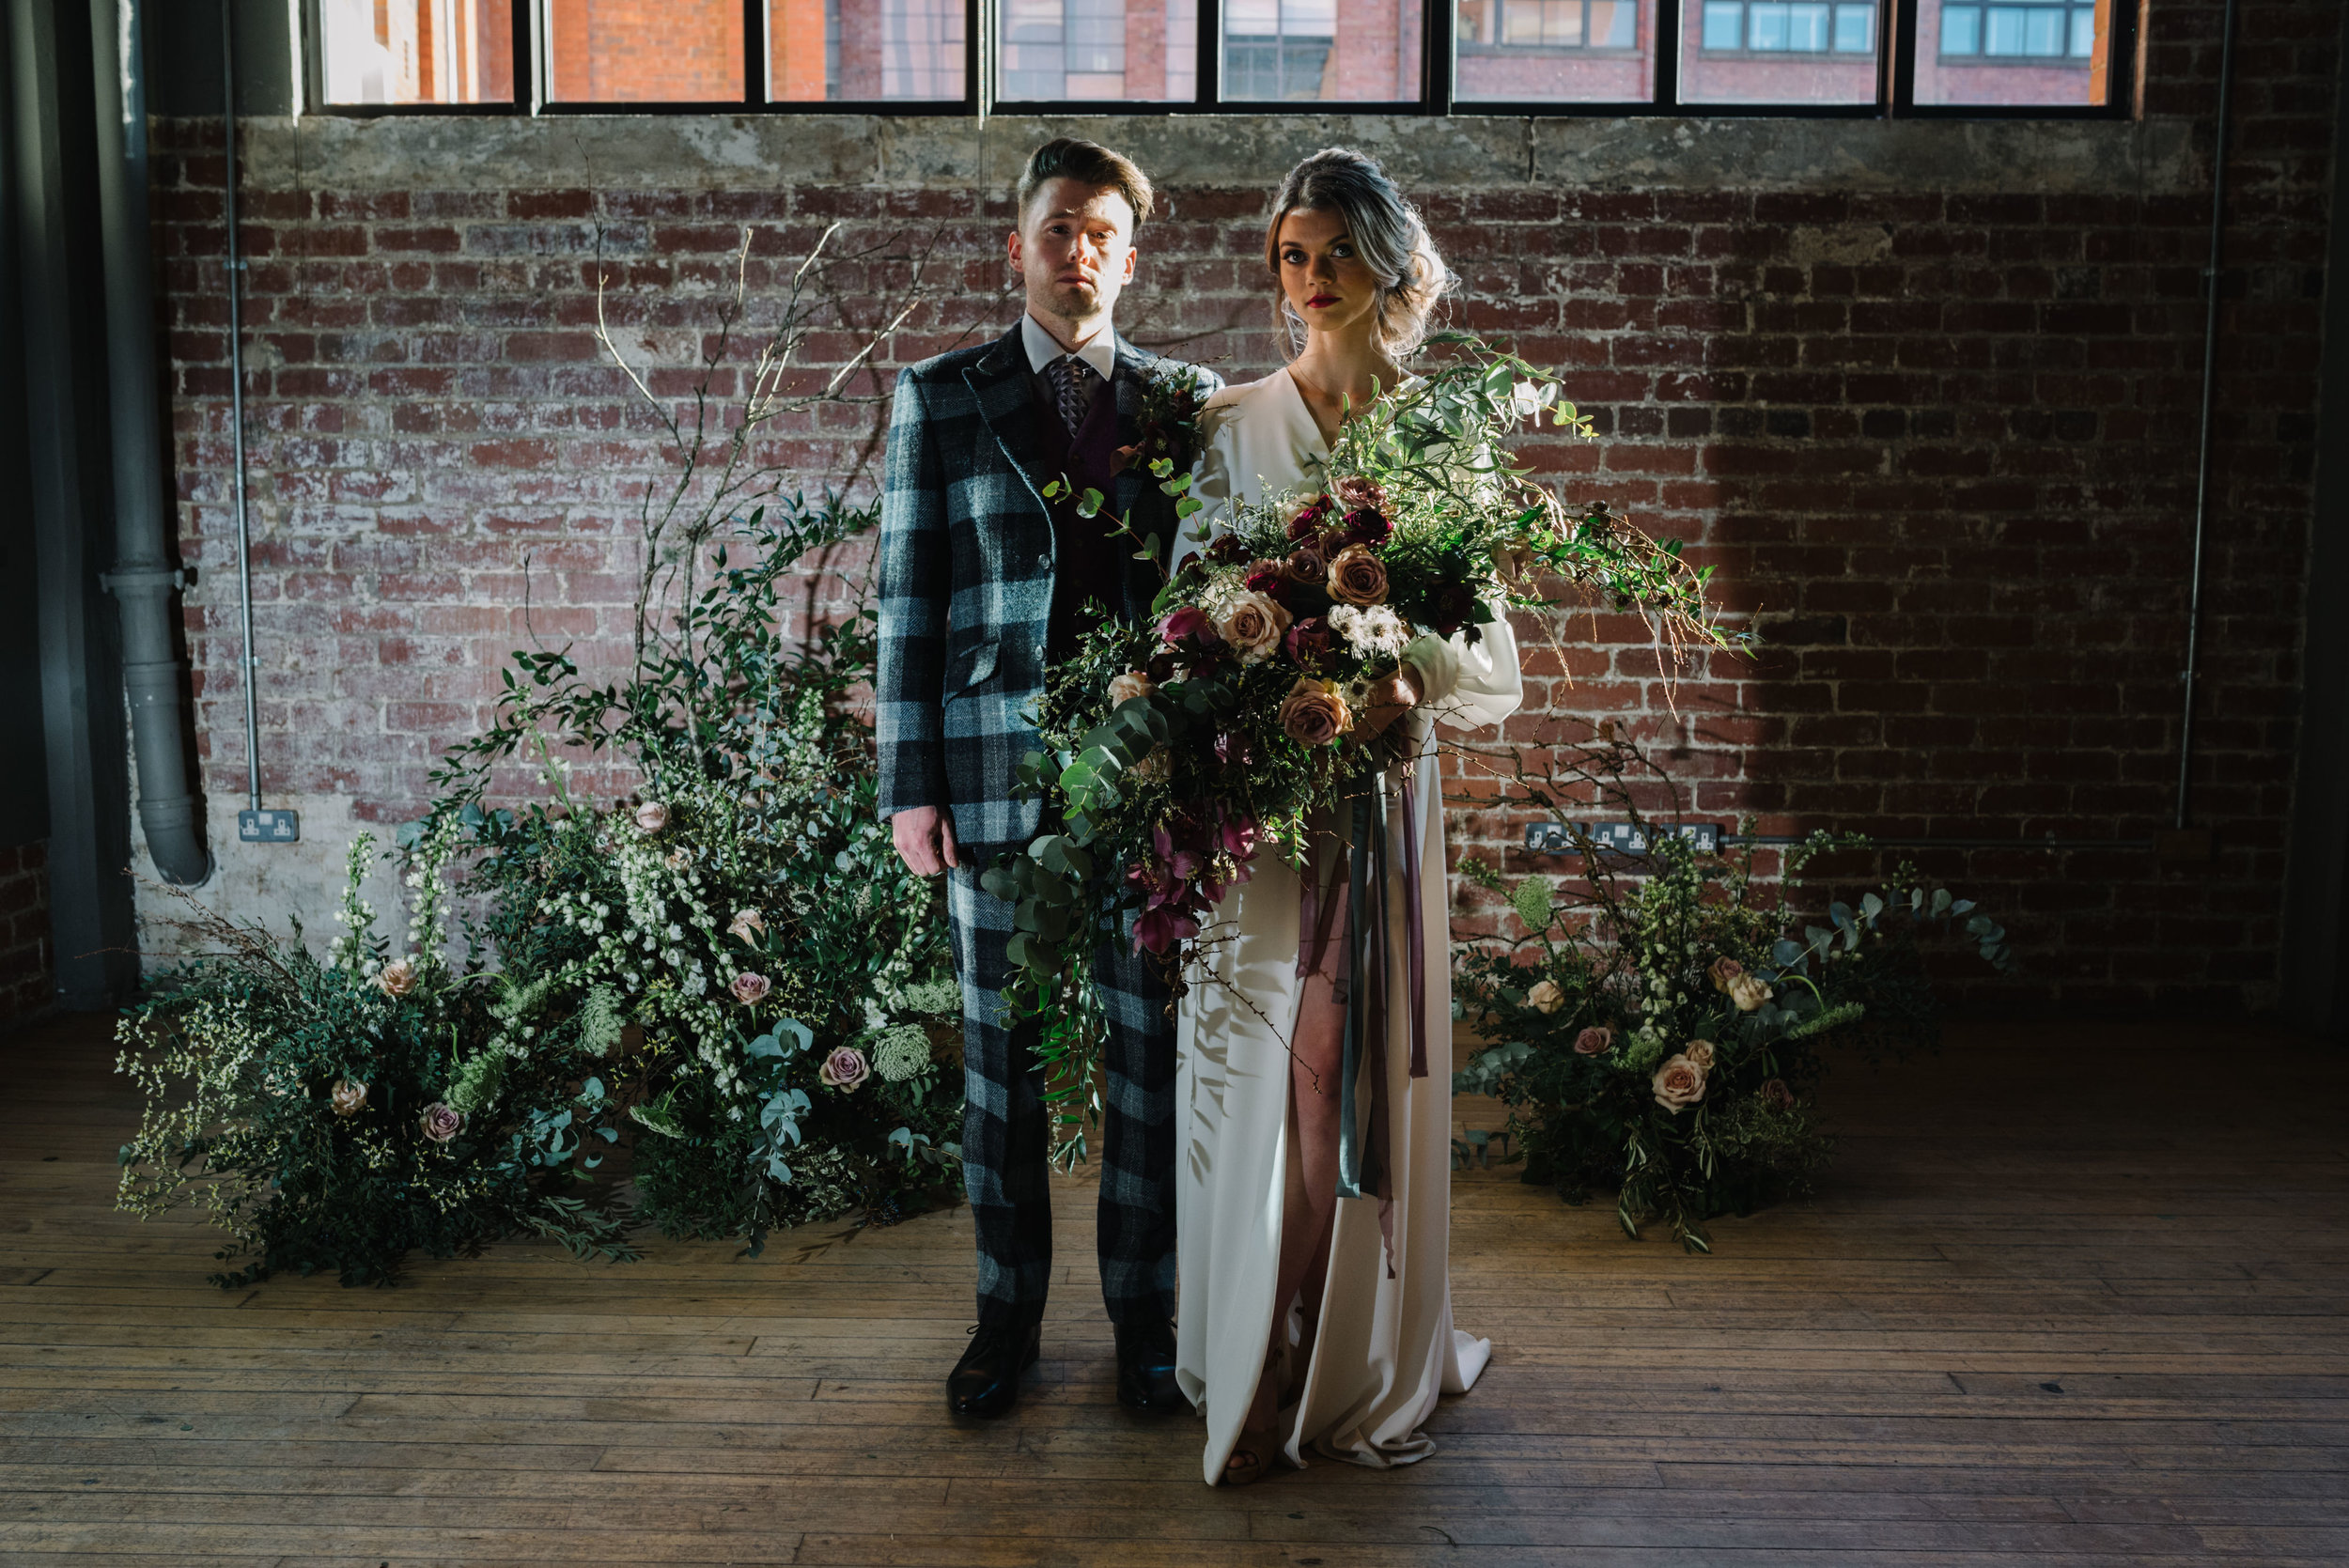 Modern Wedding Inspiration Shoot in Glasgow Brewery With a Frill Installation, Candy Floss and Neon 00126.jpg